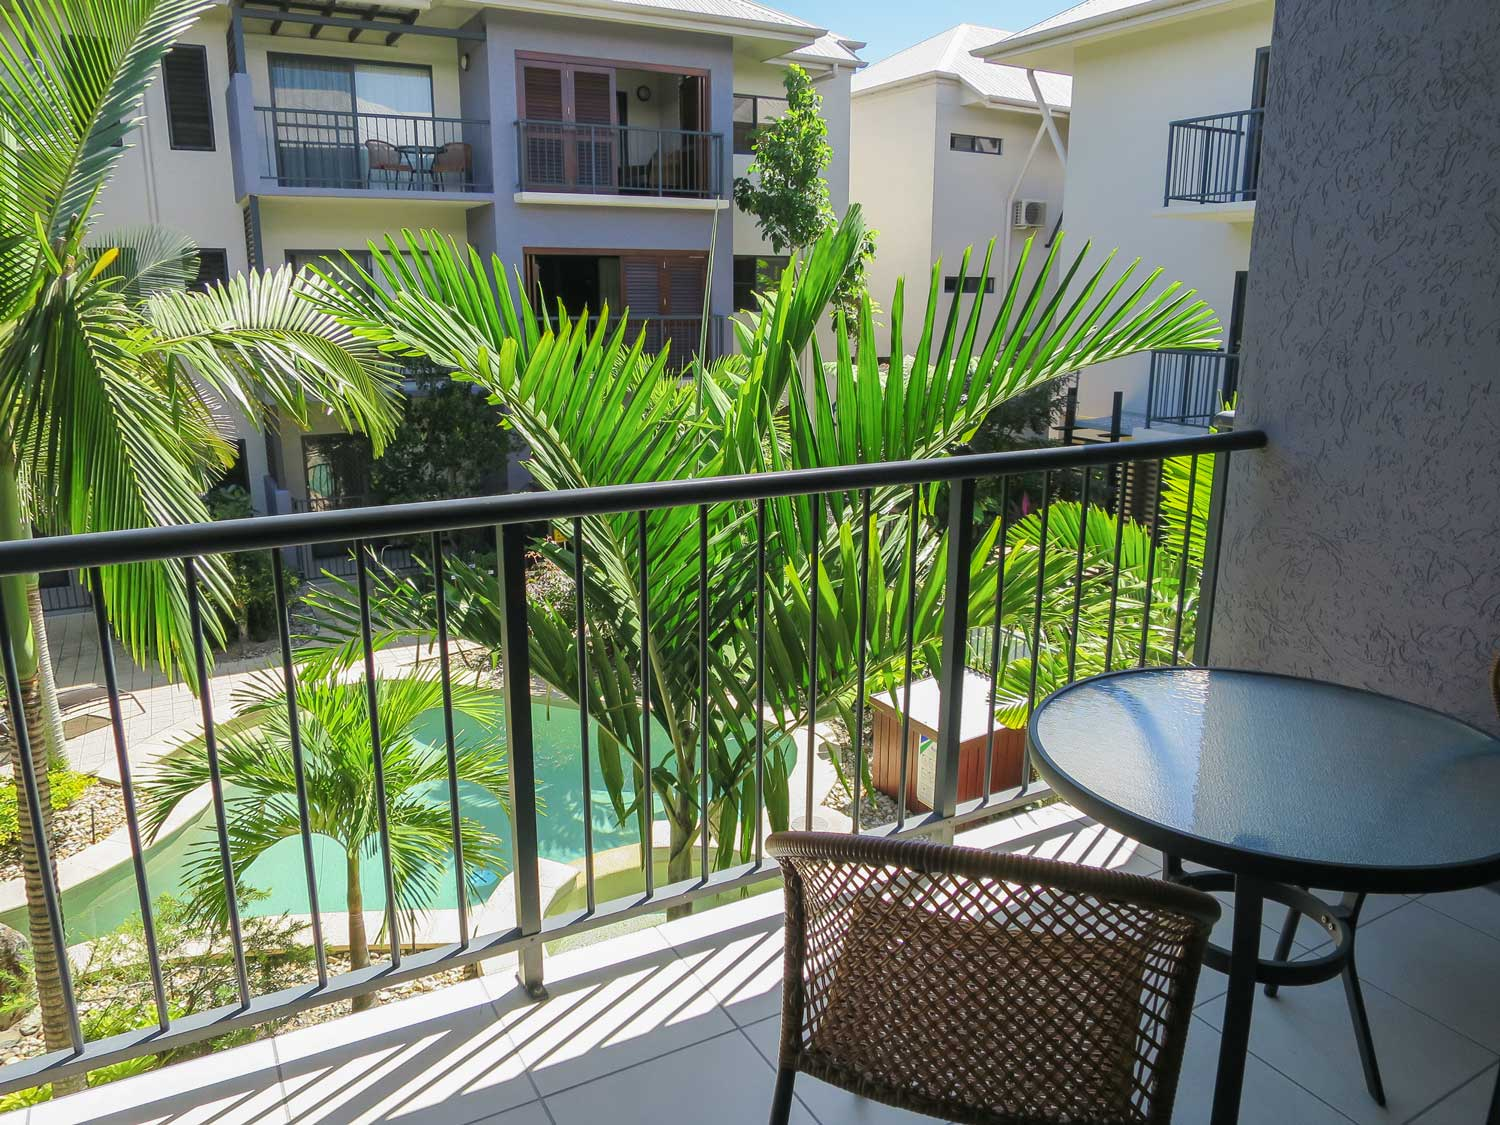 Gallery | Studio, 1 & 2 Bedroom Accommodation in Cairns ...